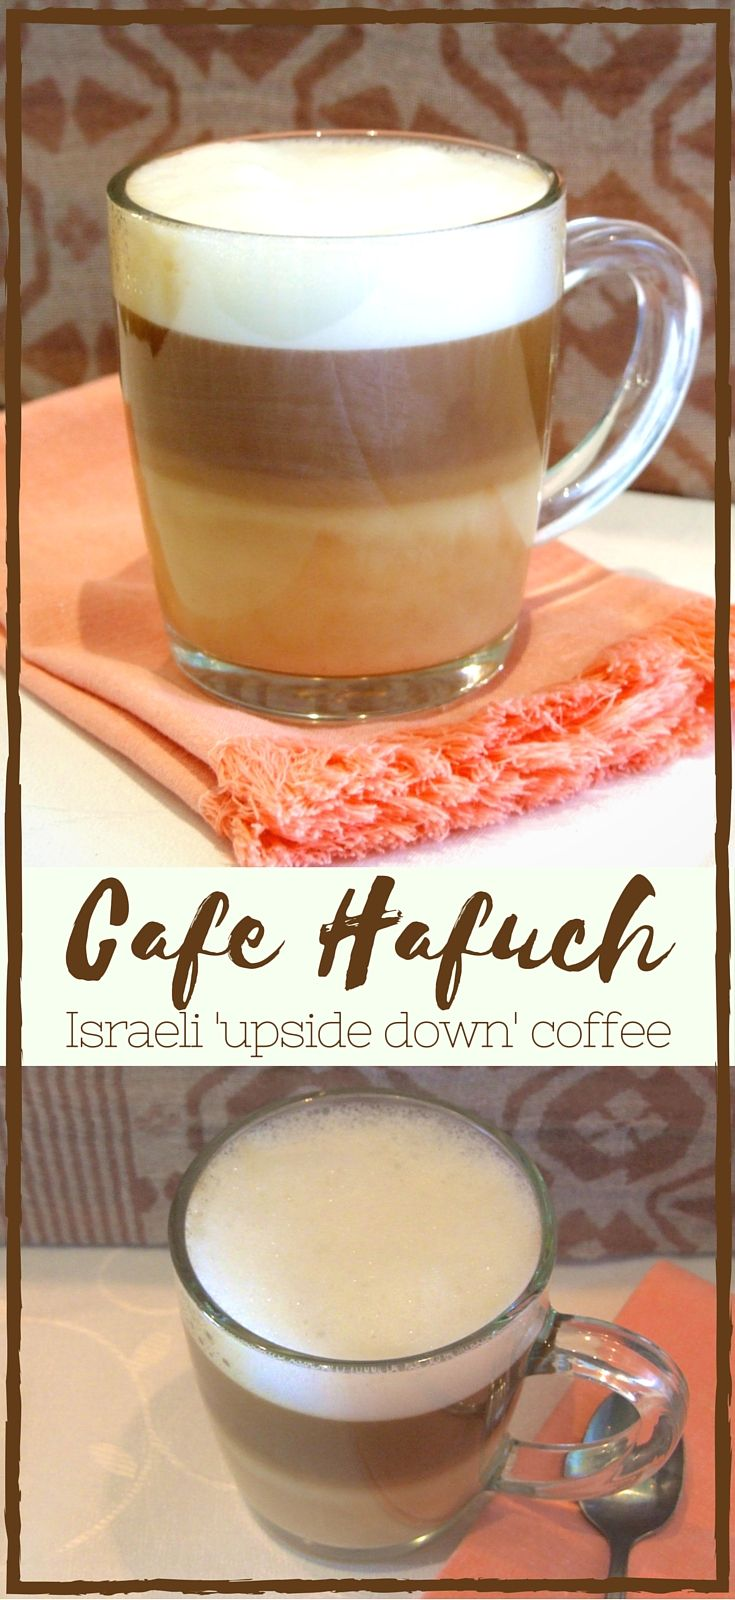 A delicious milky coffee with layers of hot milk and espresso topped with milk foam. Beautiful to look at and fantastic to drink! An Israeli treat.